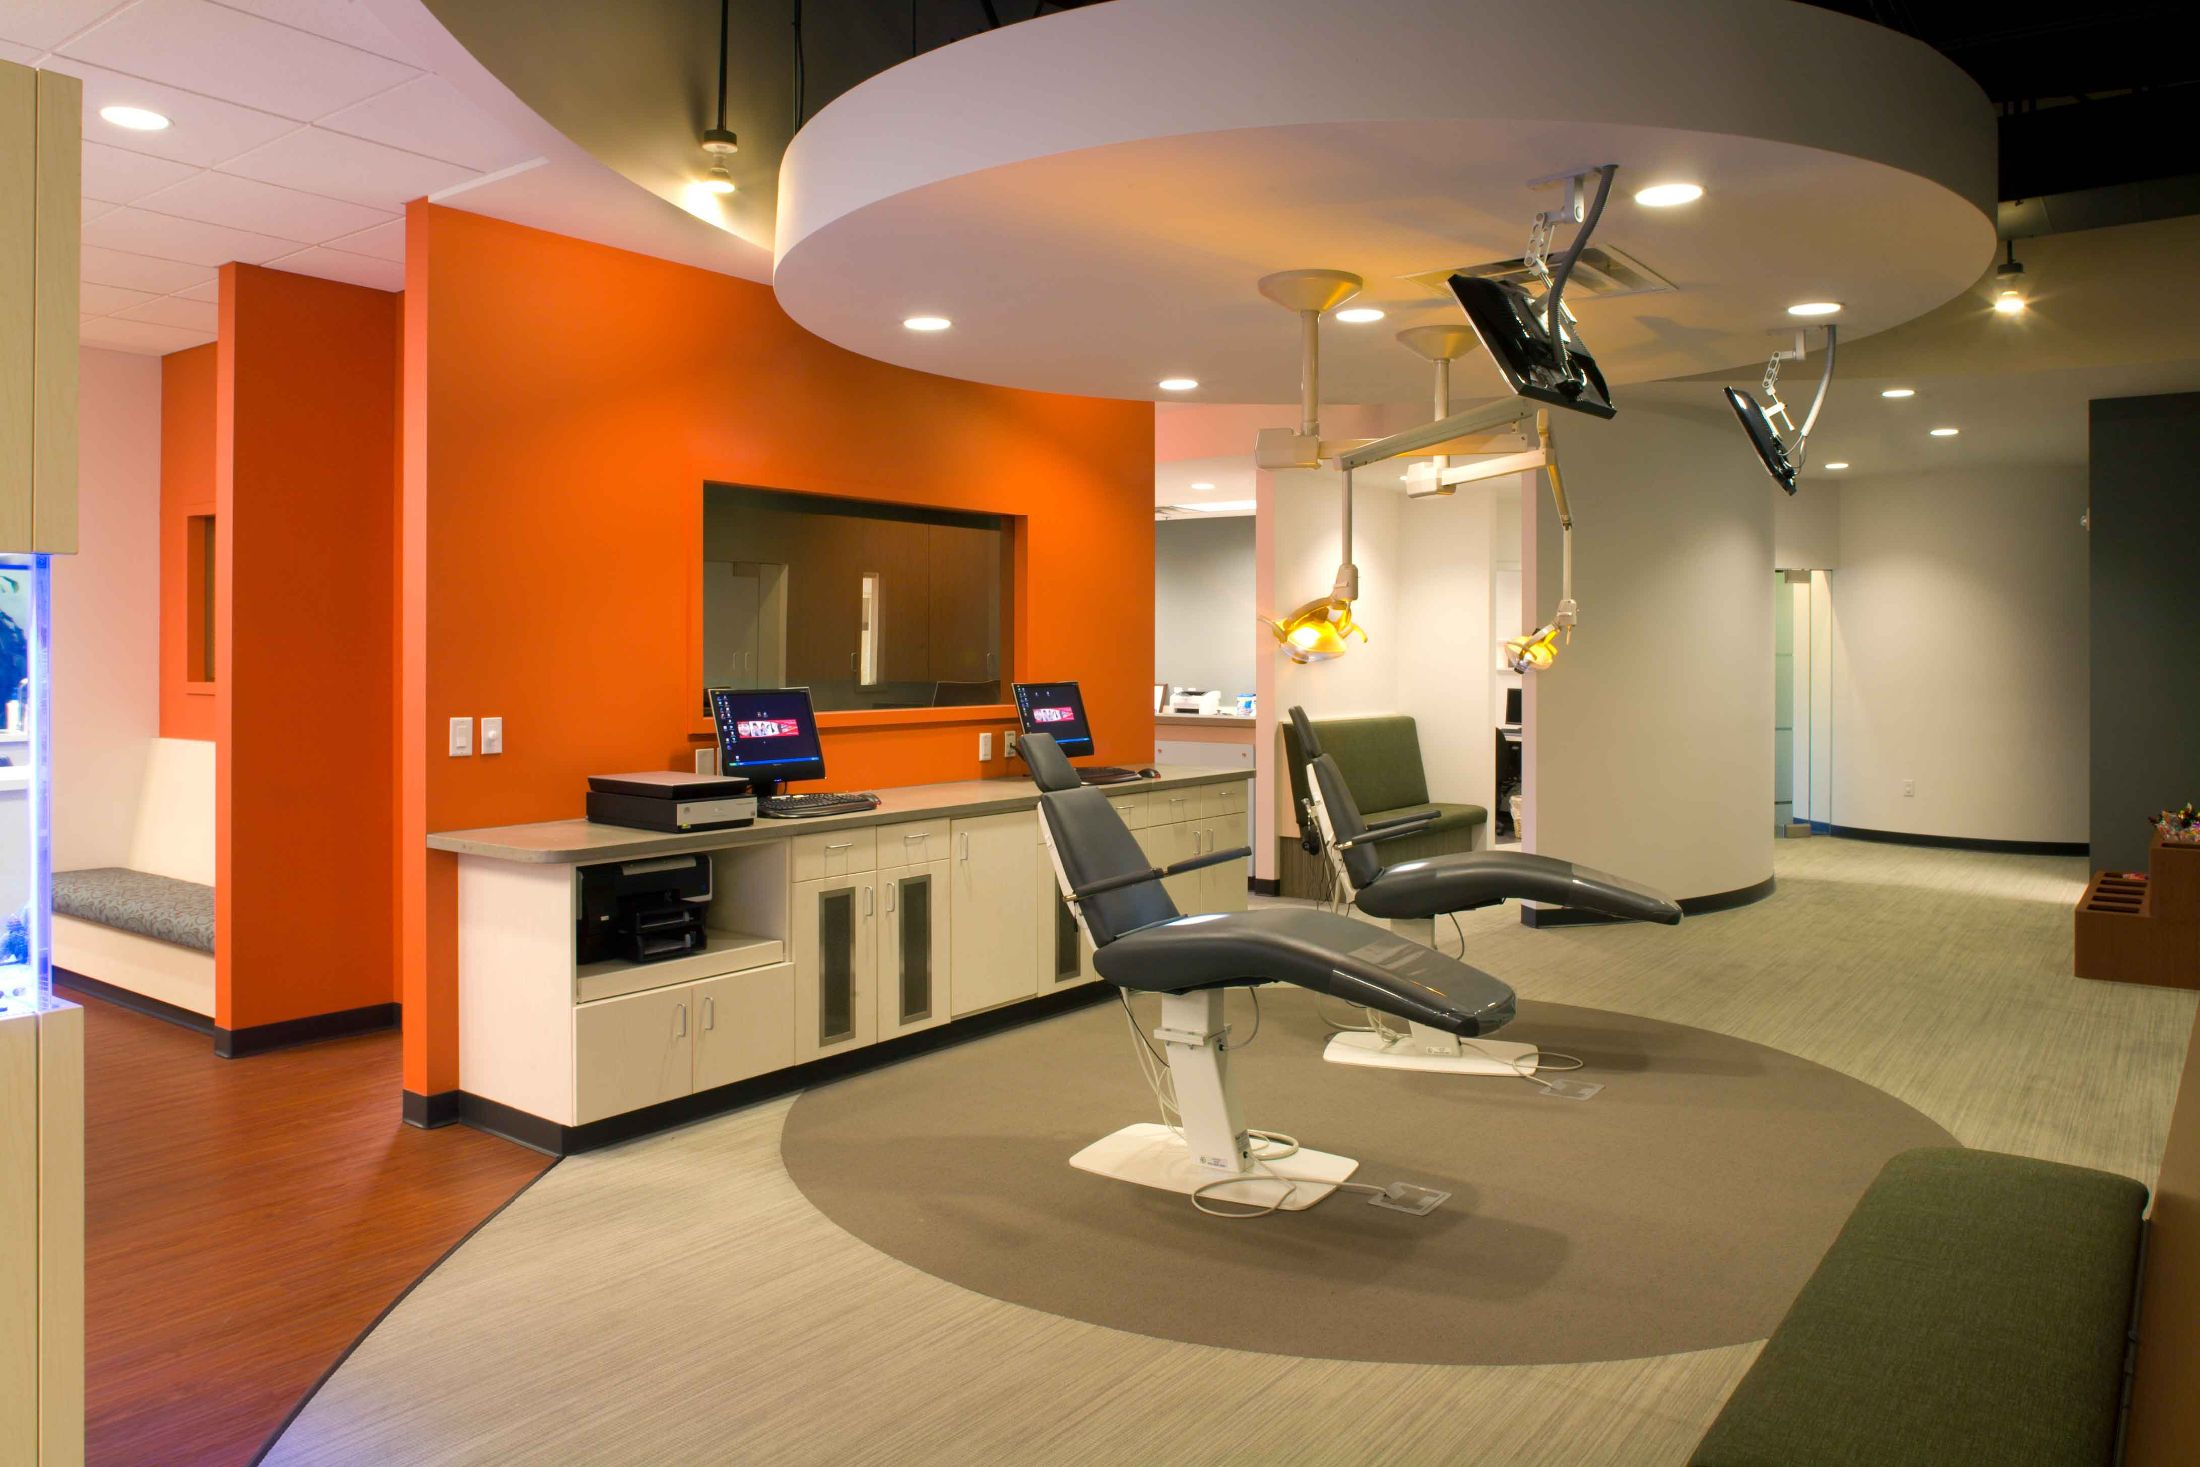 Colorado Kids Pediatric Patient Area